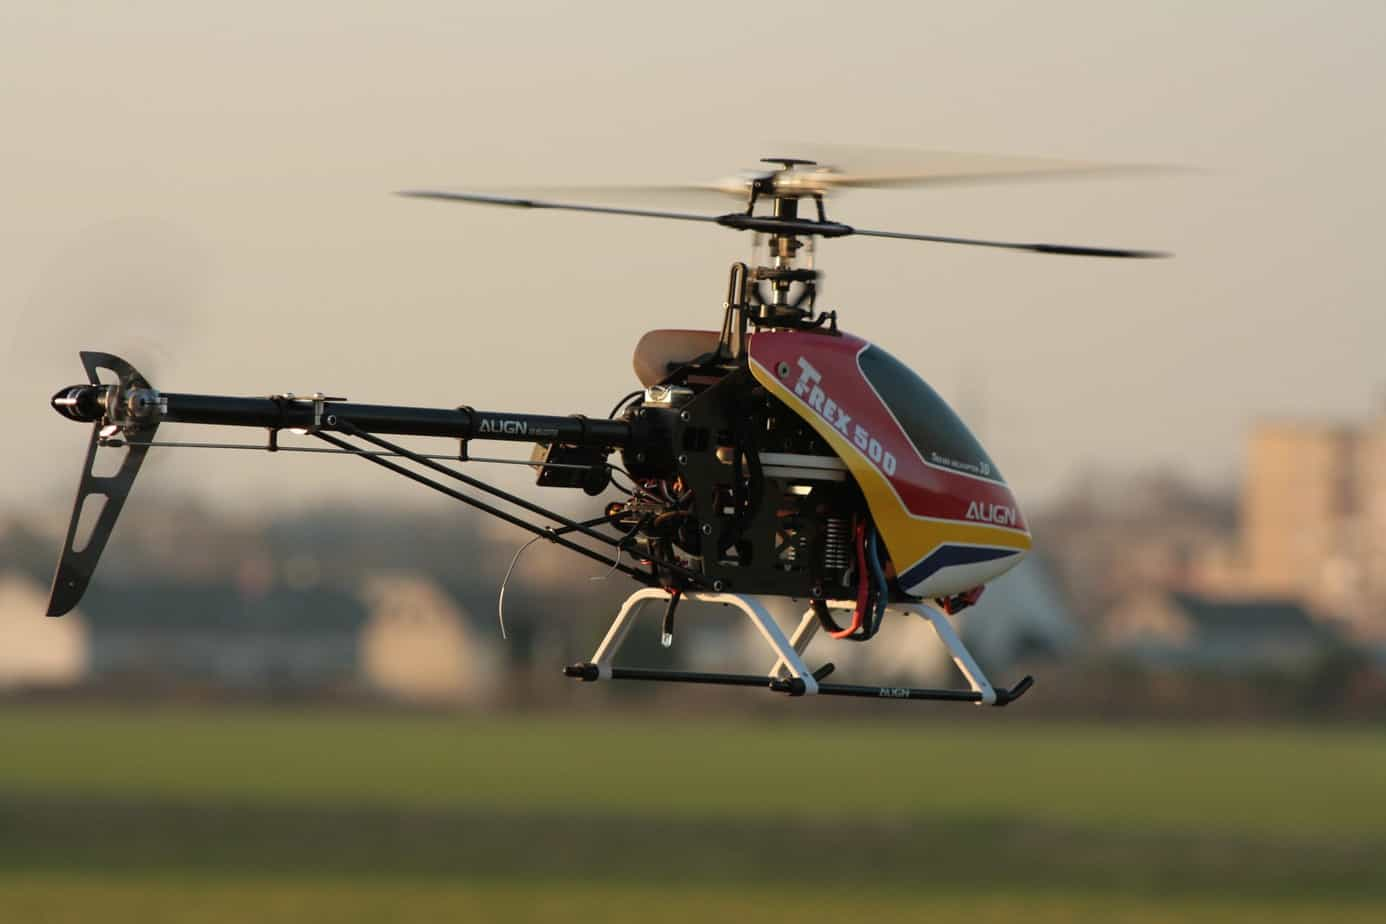 RC helicopter will not lift off?: Common reasons & fixes